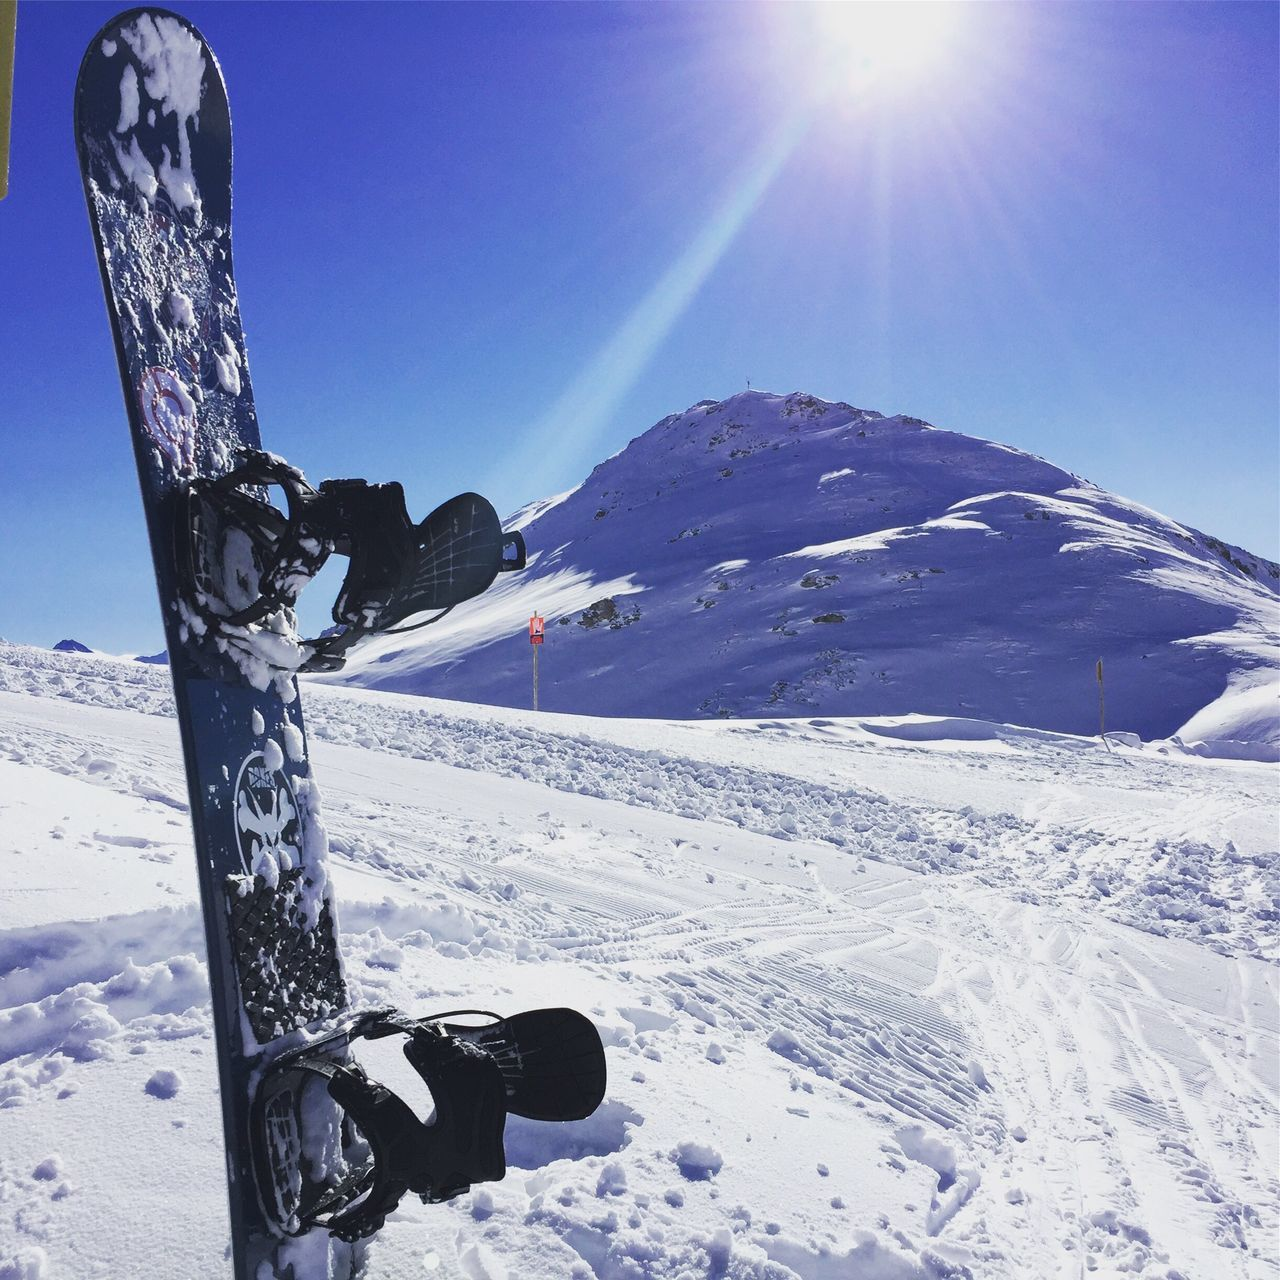 Mountain Top Snow Dream Snowboard Moments Snowboard Snow Mayrhofen Wintersport Perfect Weather Clear Sky